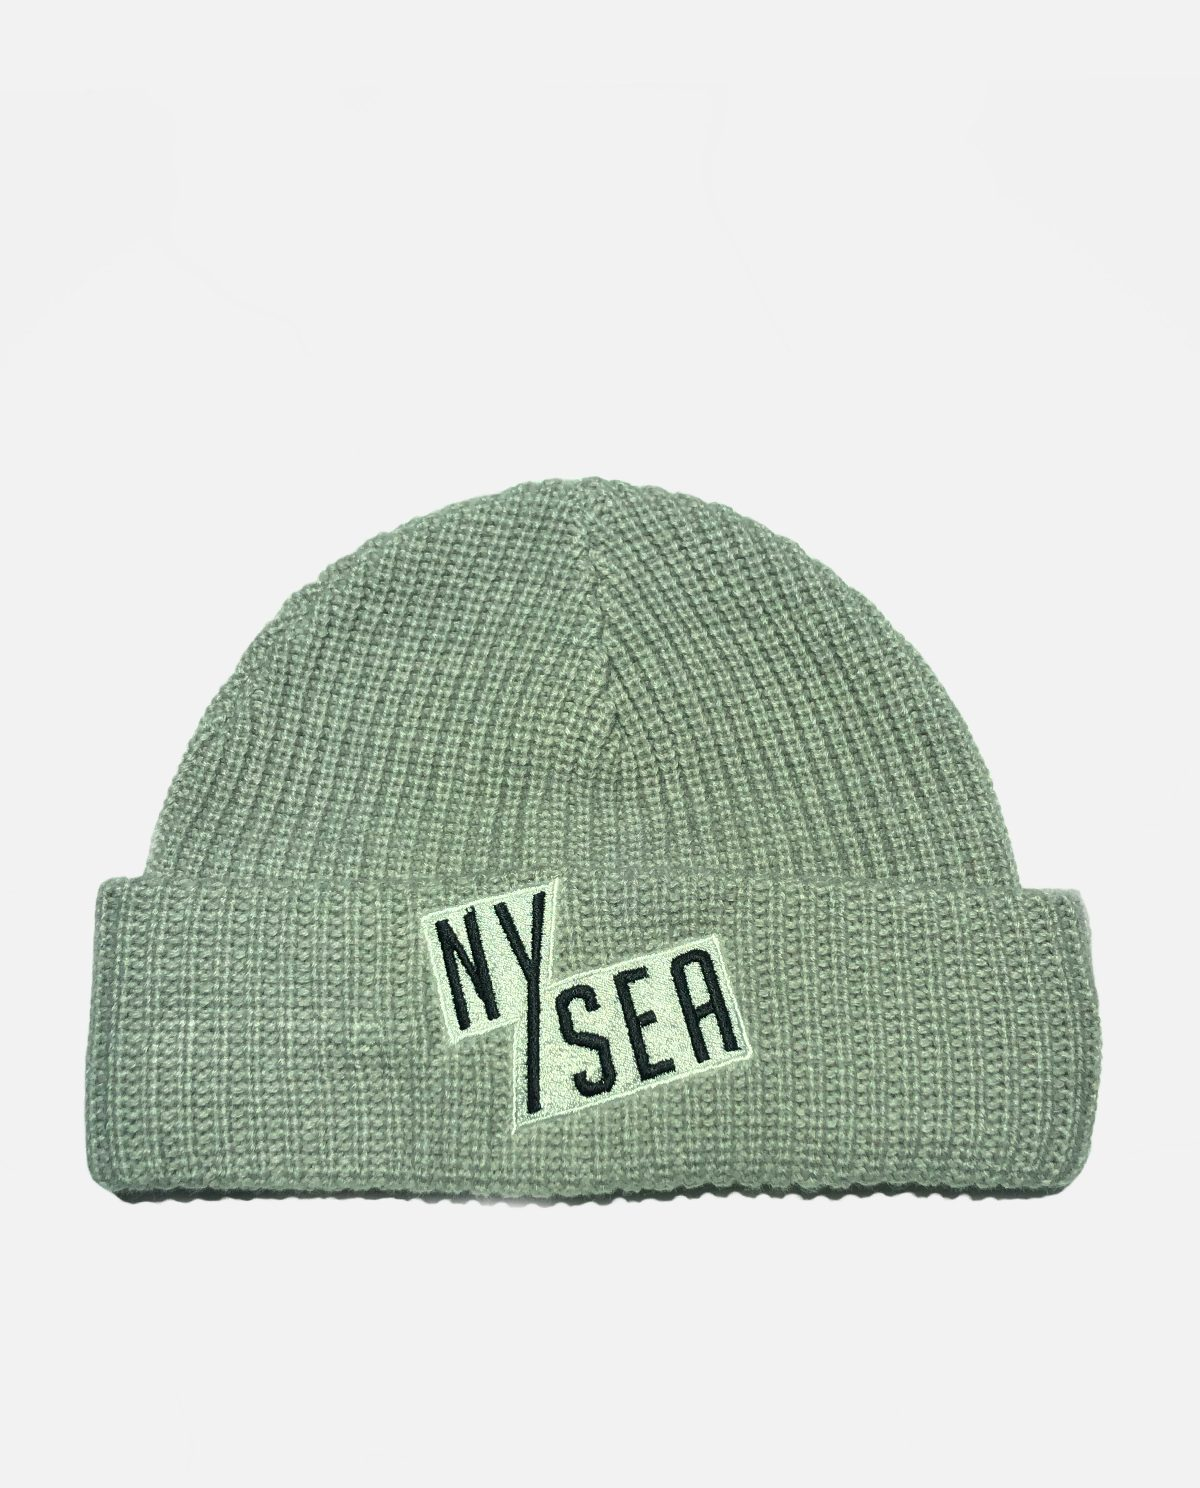 nysea-20wintercollection_skully-grey